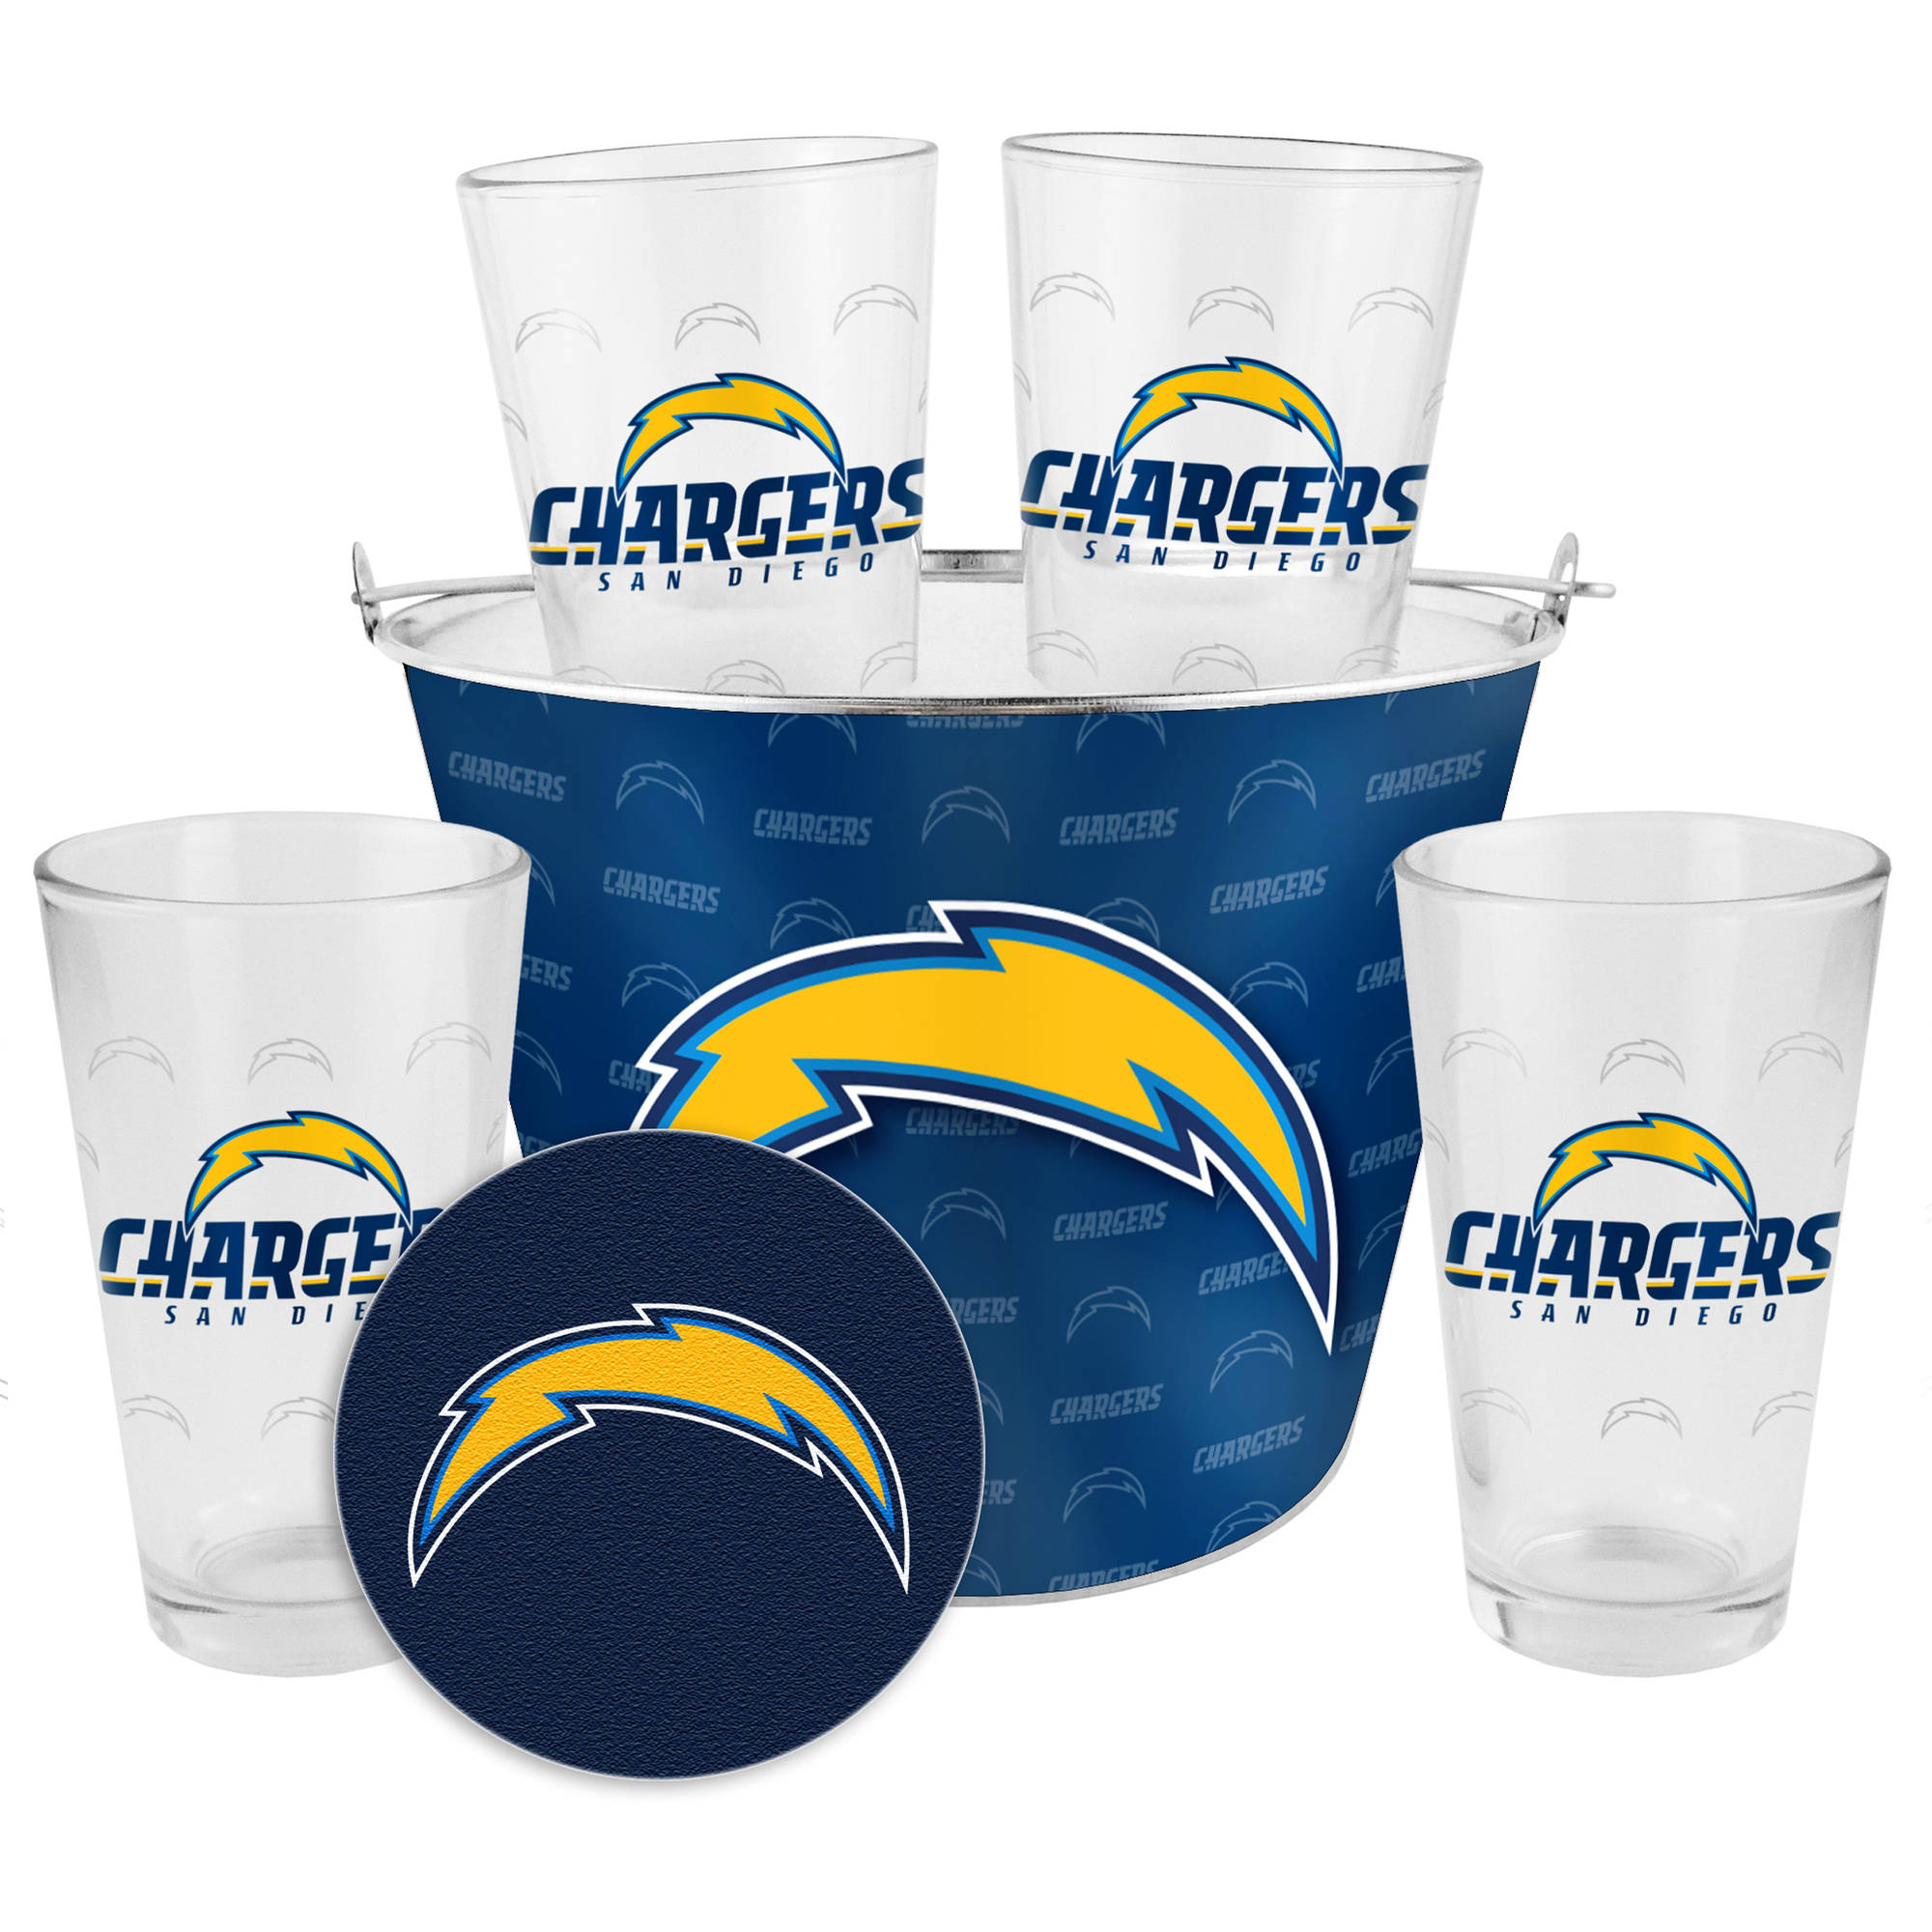 San Diego Chargers Gifts: Boelter Brands NFL Gift Bucket Set, San Diego Chargers